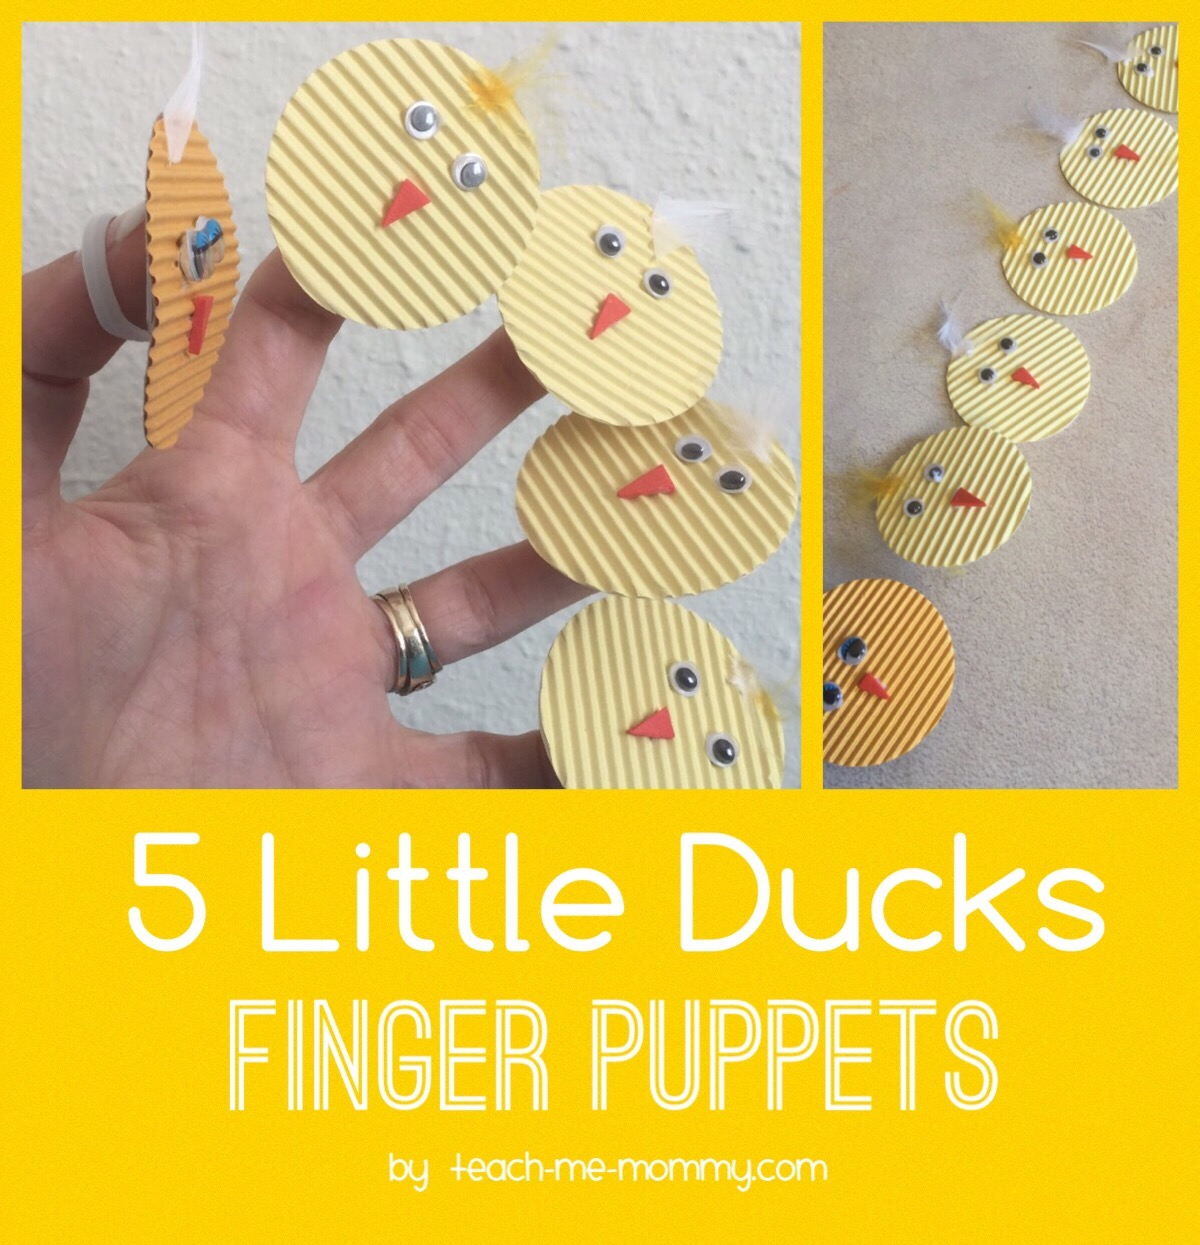 Five Little Ducks Finger Puppets Teach Me Mommy